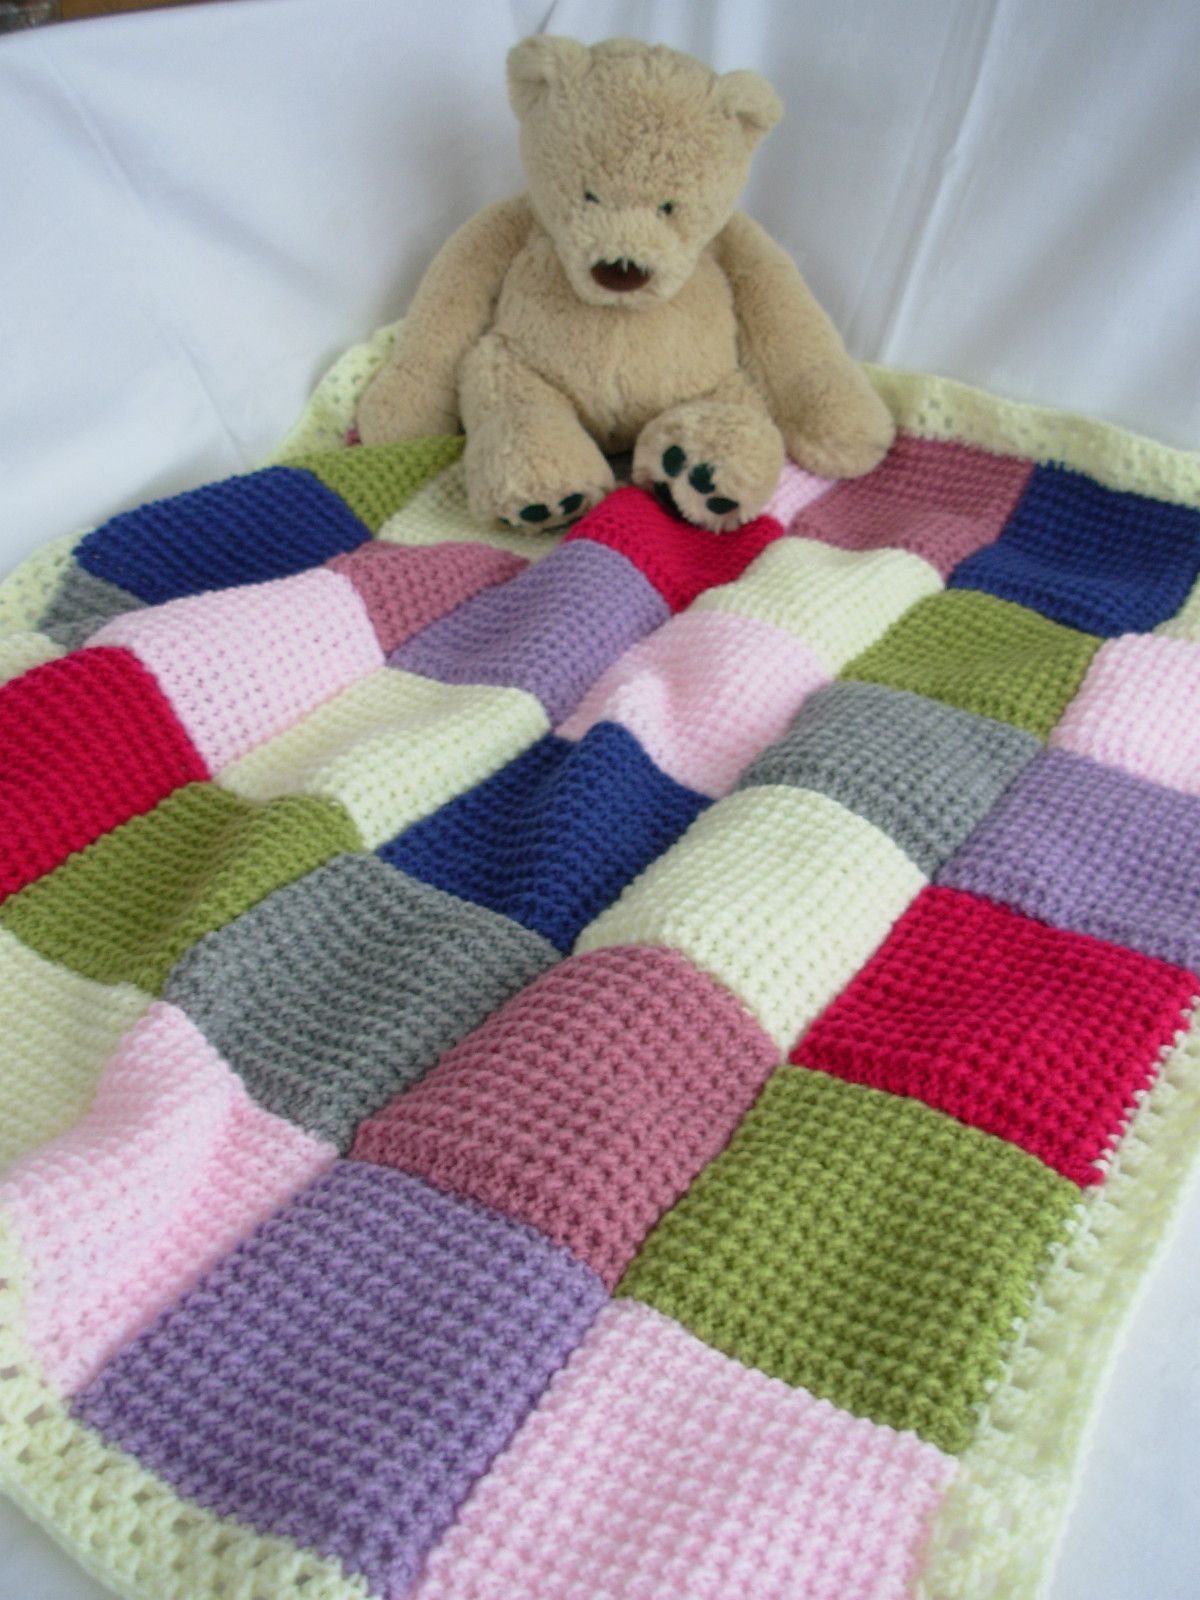 Patchwork bed sheets patterns - Handmade Knitted Patchwork Baby Blanket Pink Lilac Cream Blue Green Grey